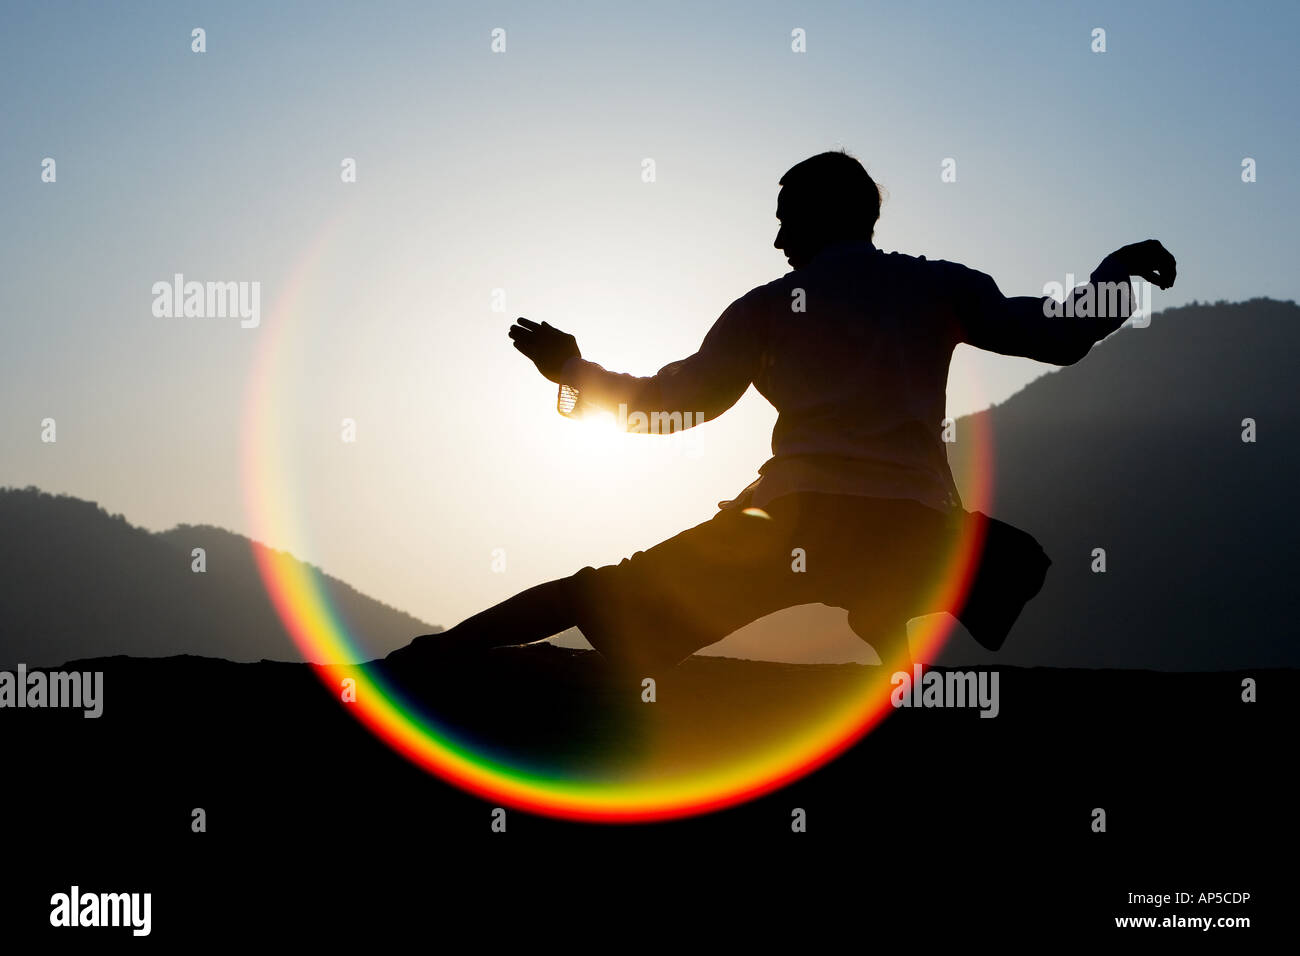 Man performing tai chi against a rising sun in india - Stock Image